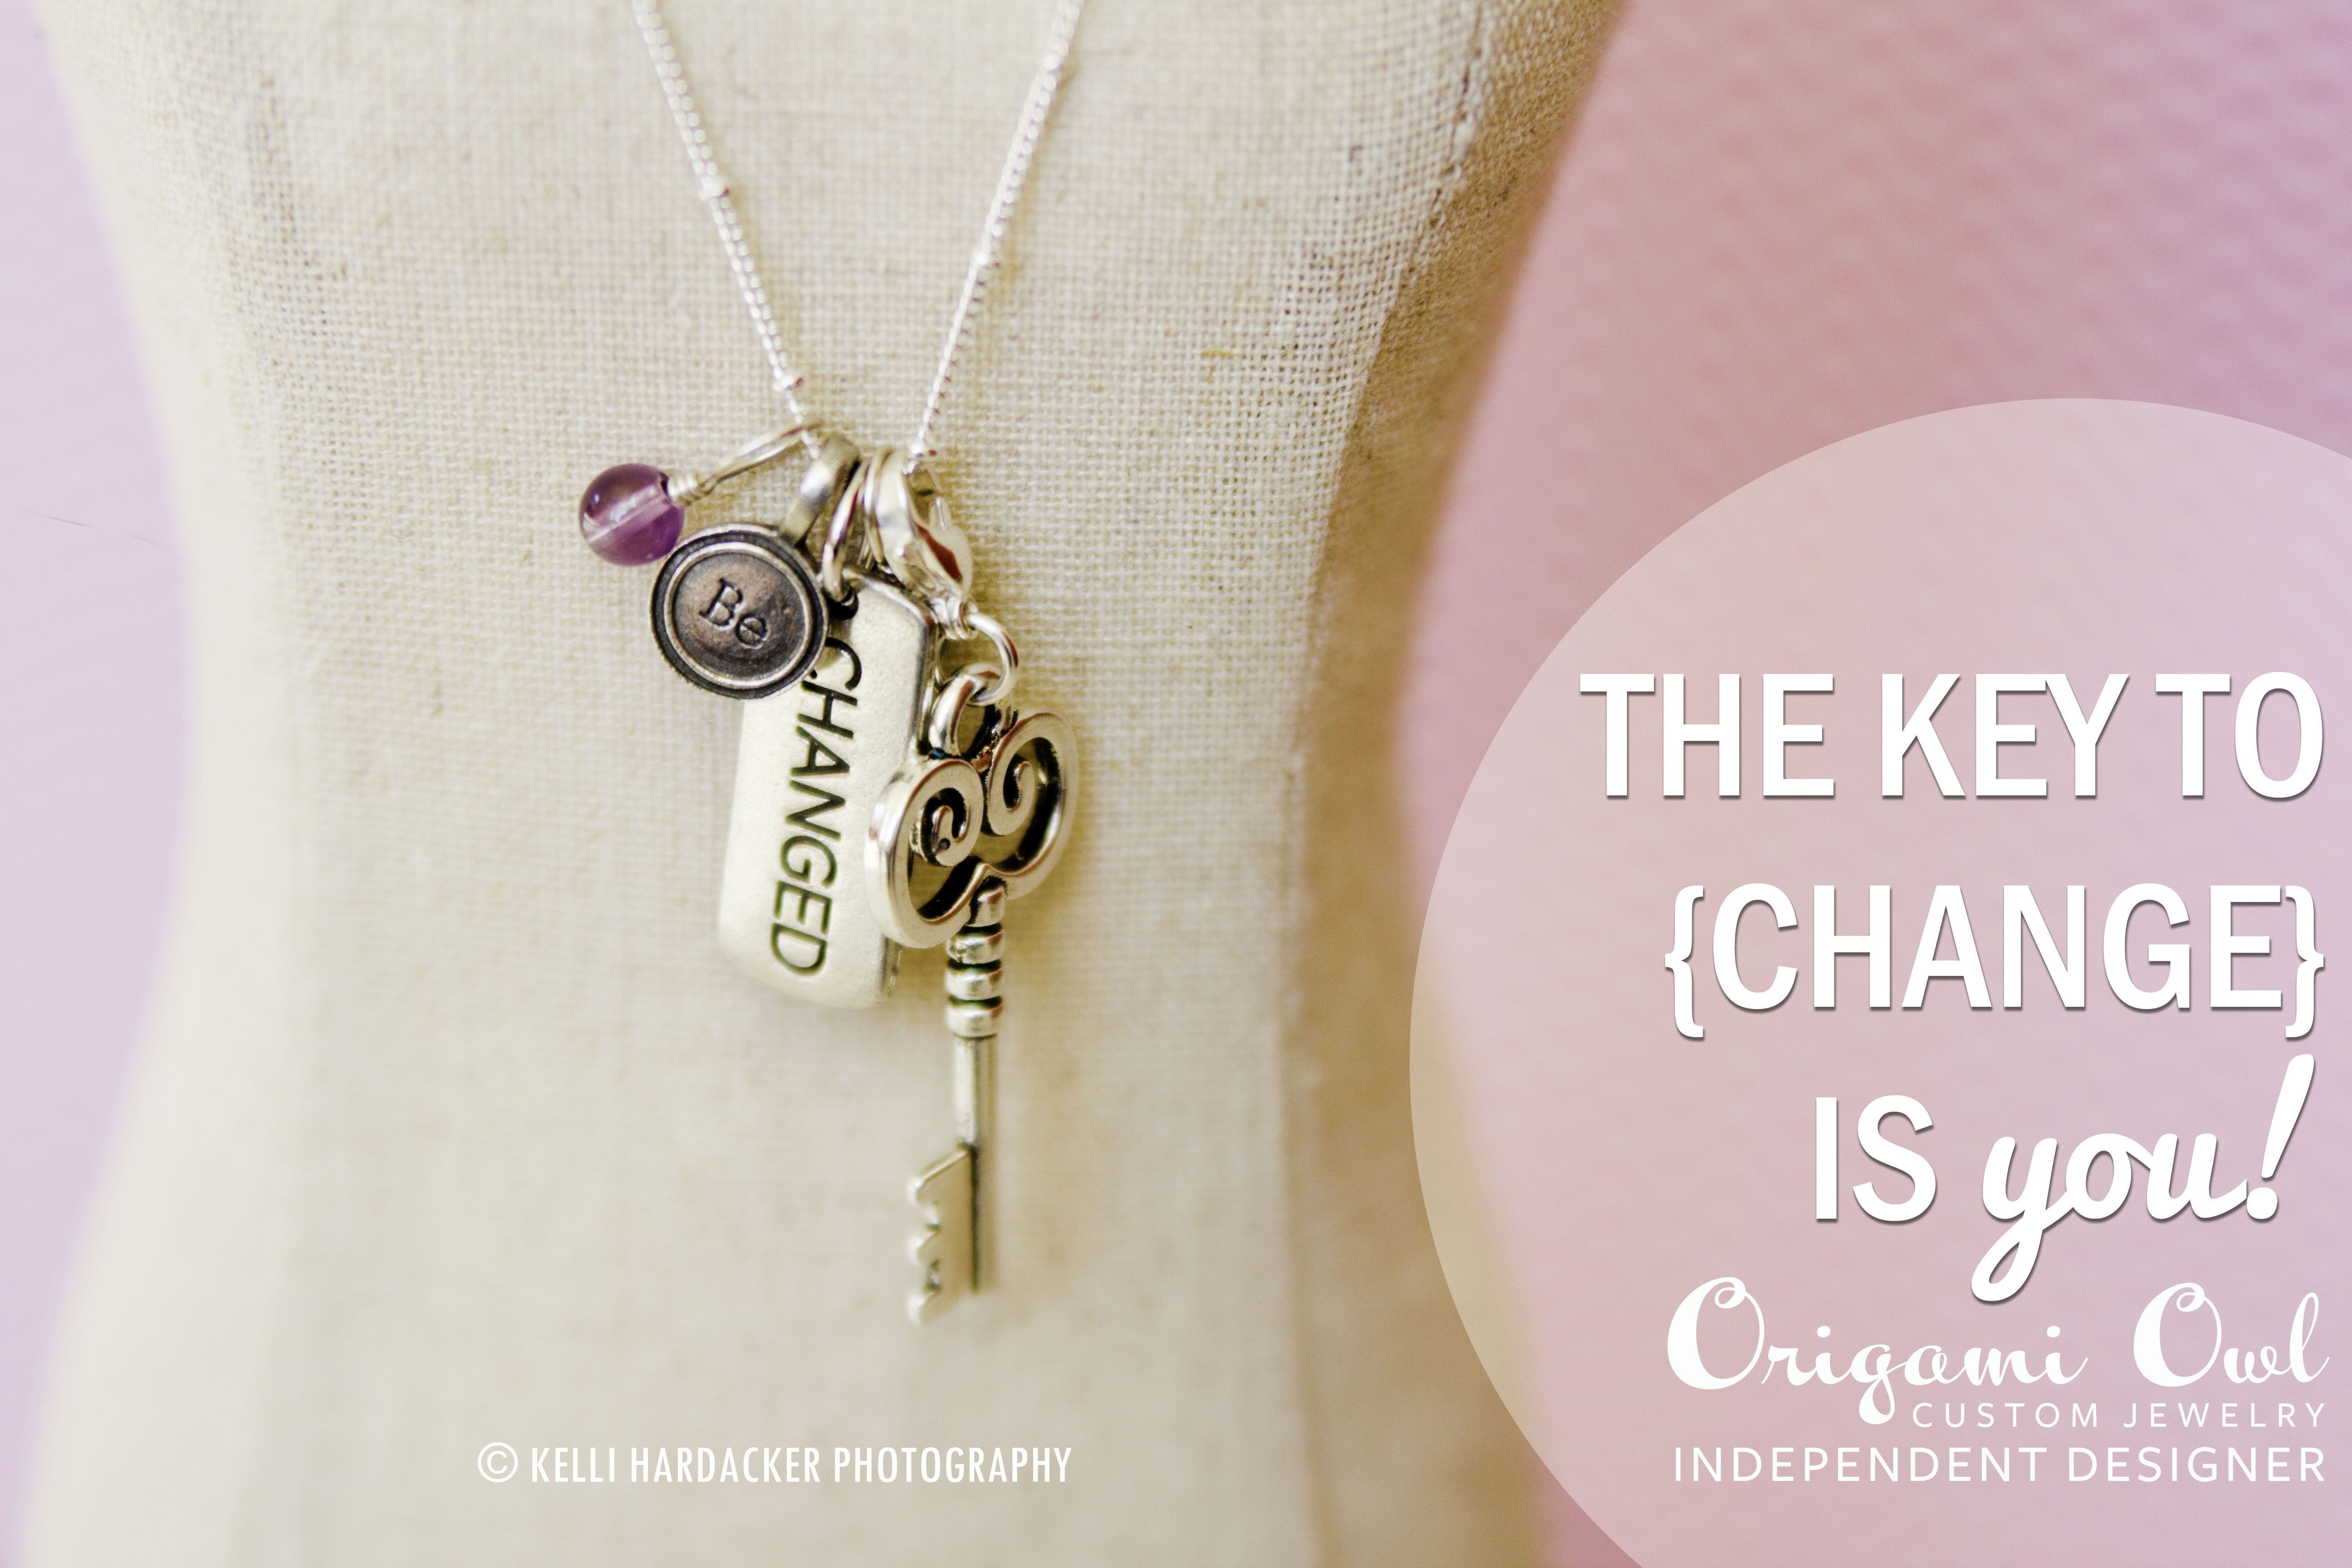 What do you think the key to change is? ..... It's {YOU ... - photo#46